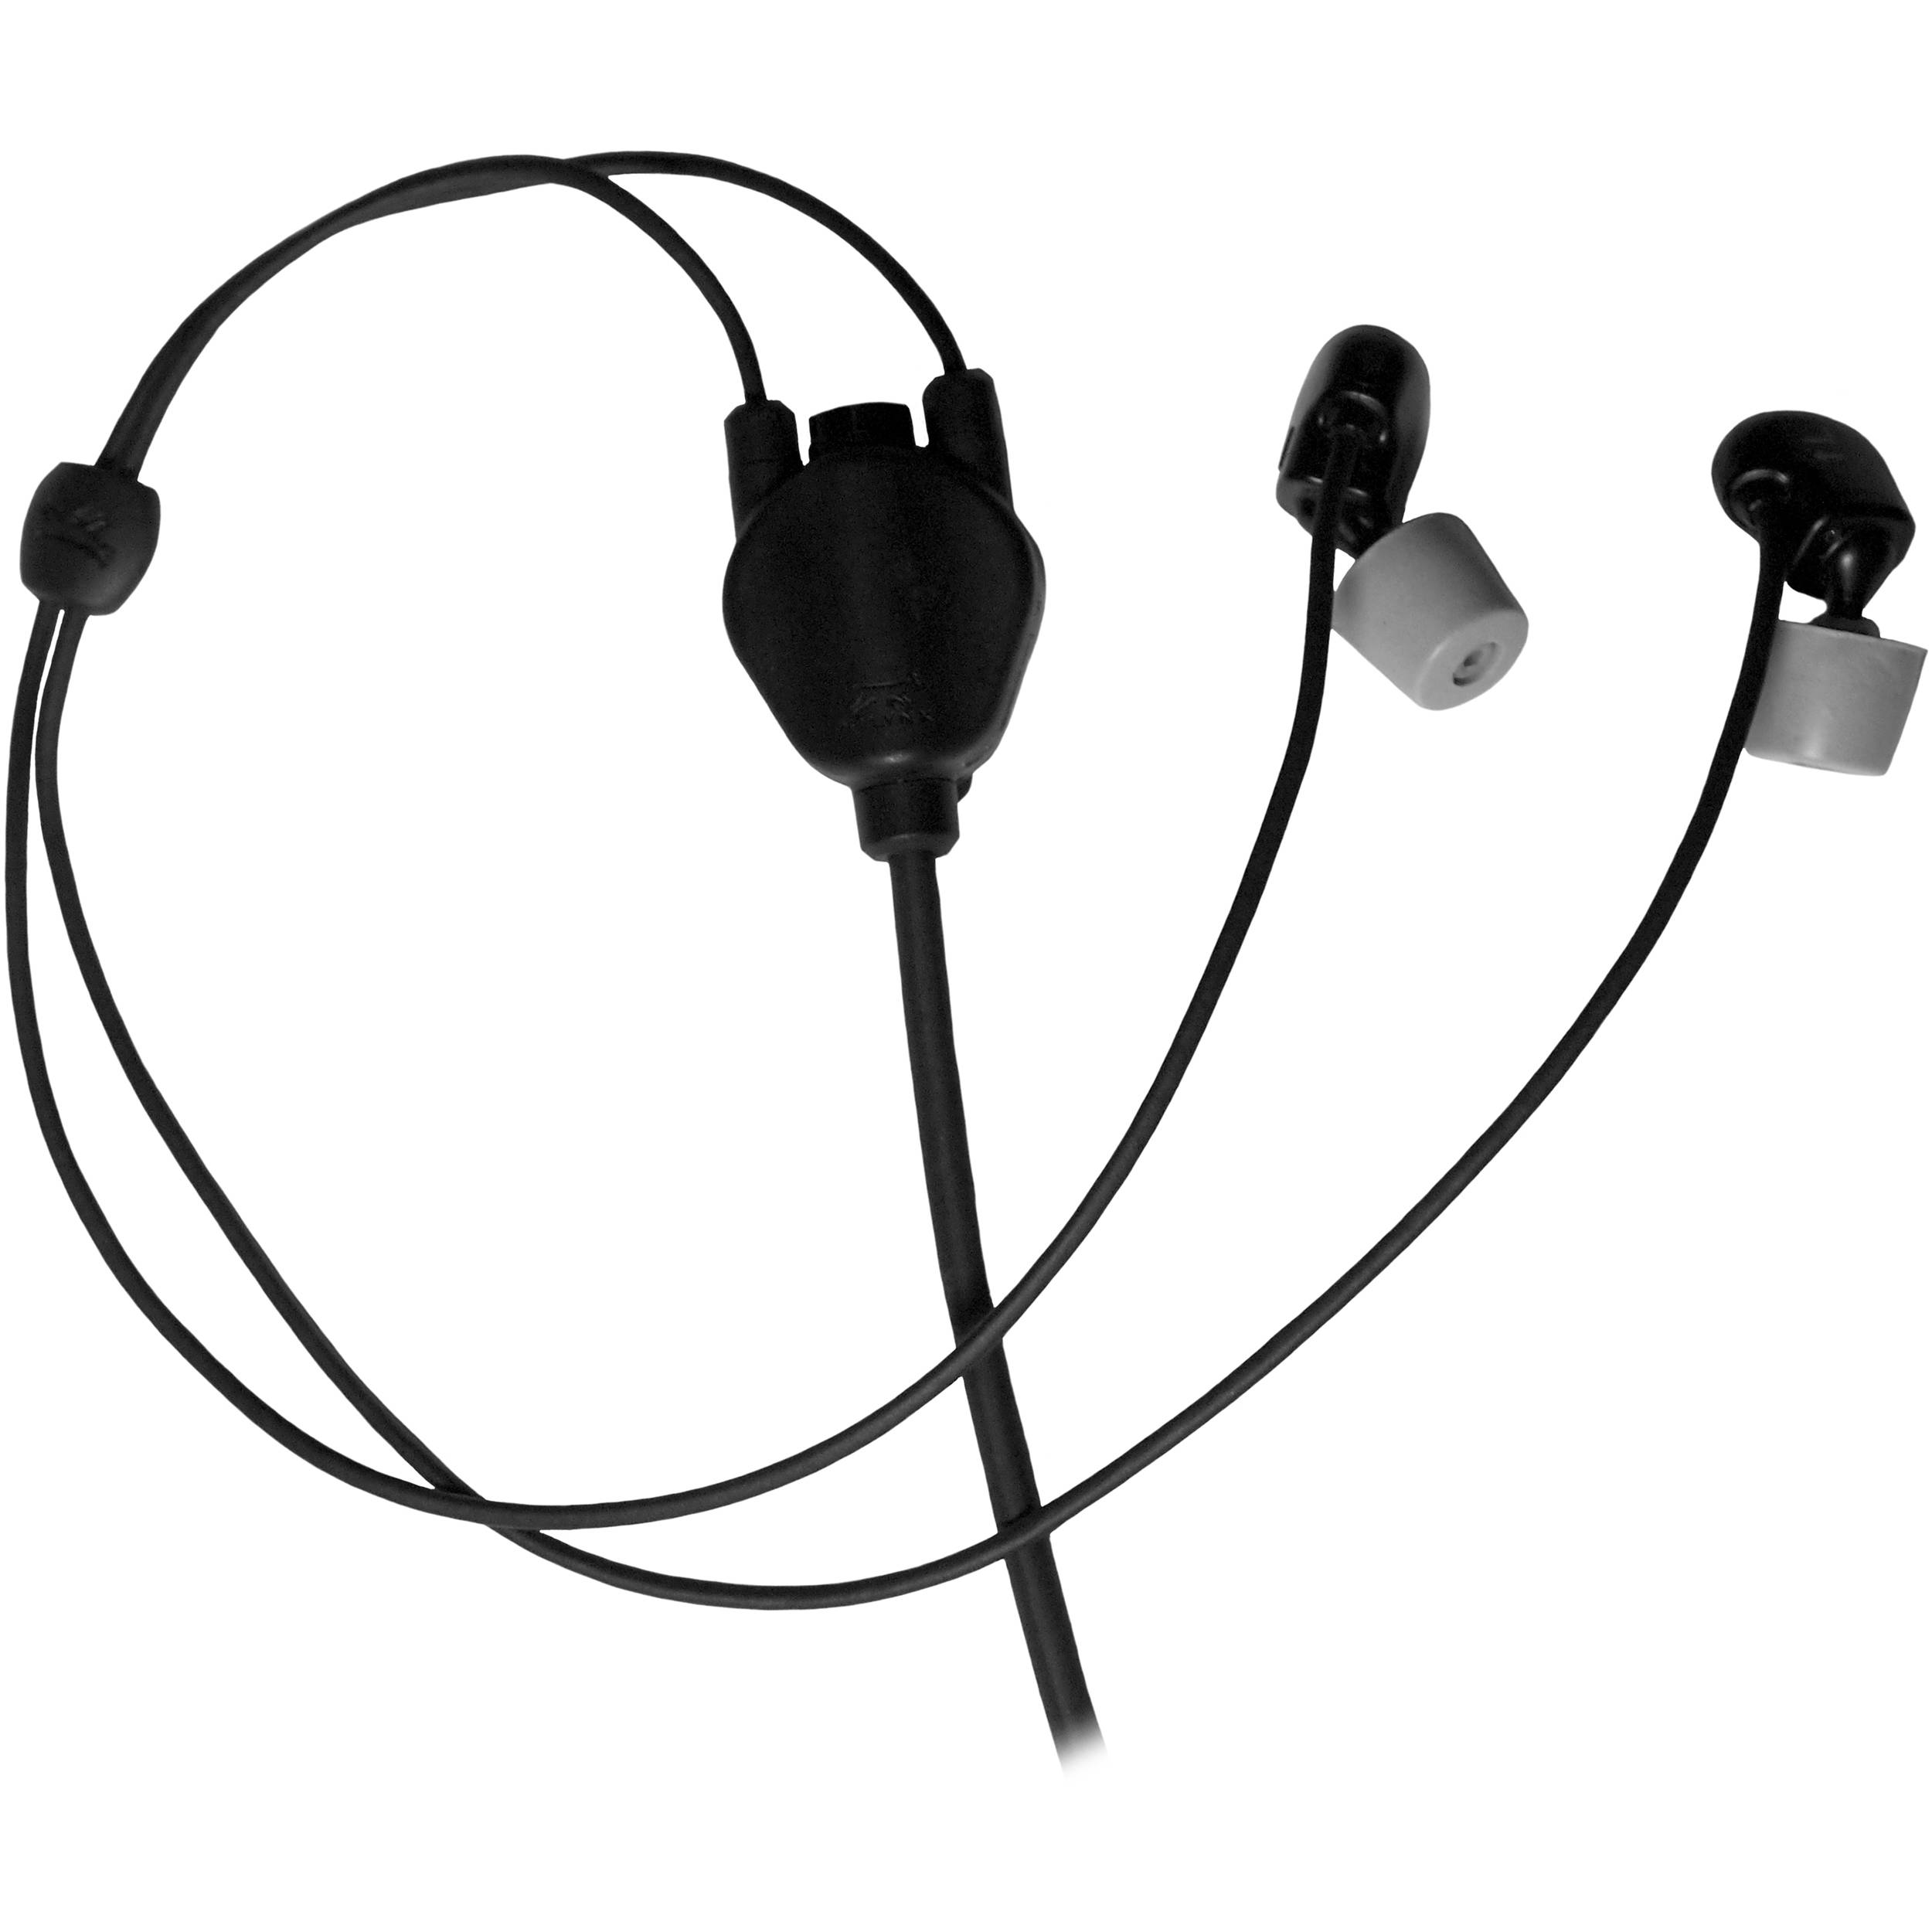 silynx munications clarus hybrid stingray headset hhs 002 b h  silynx munications clarus hybrid stingray headset without boom microphone black